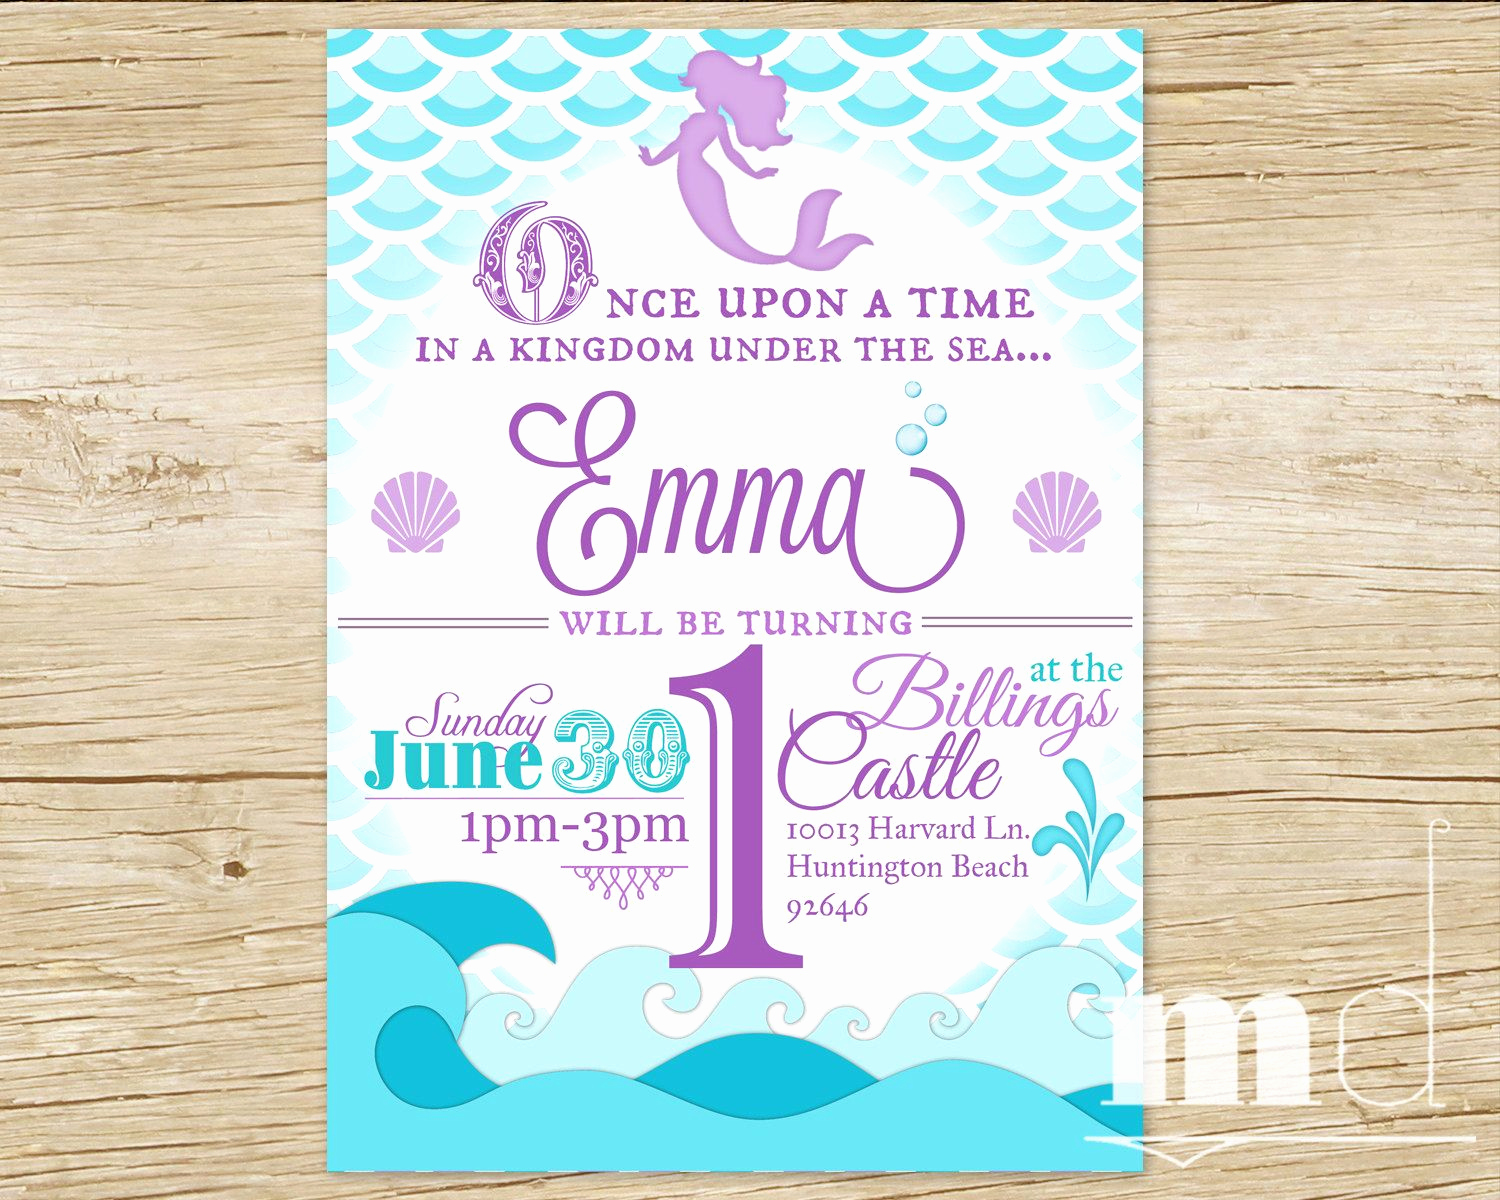 Little Mermaid Invitation Template Fresh Mermaid Birthday Party Invitation Little Mermaid by